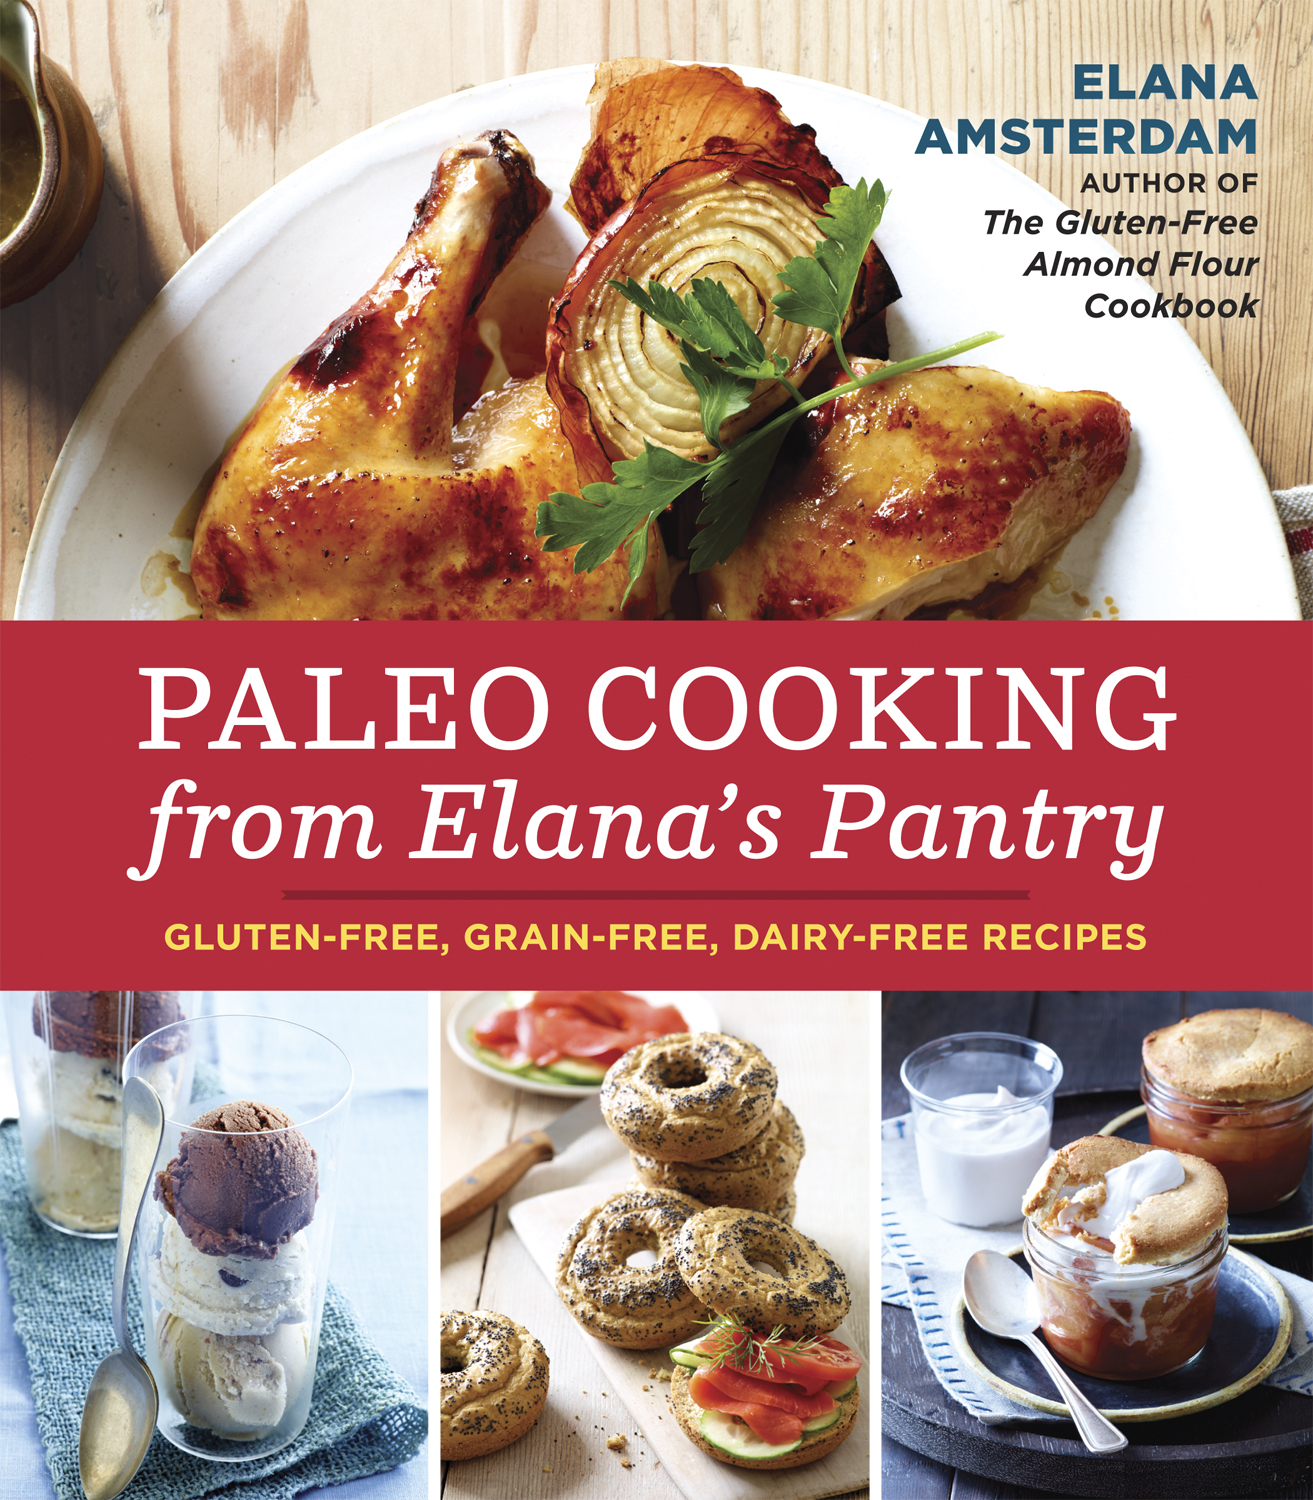 Announcing the Winner of Paleo Cooking from Elana's Pantry!